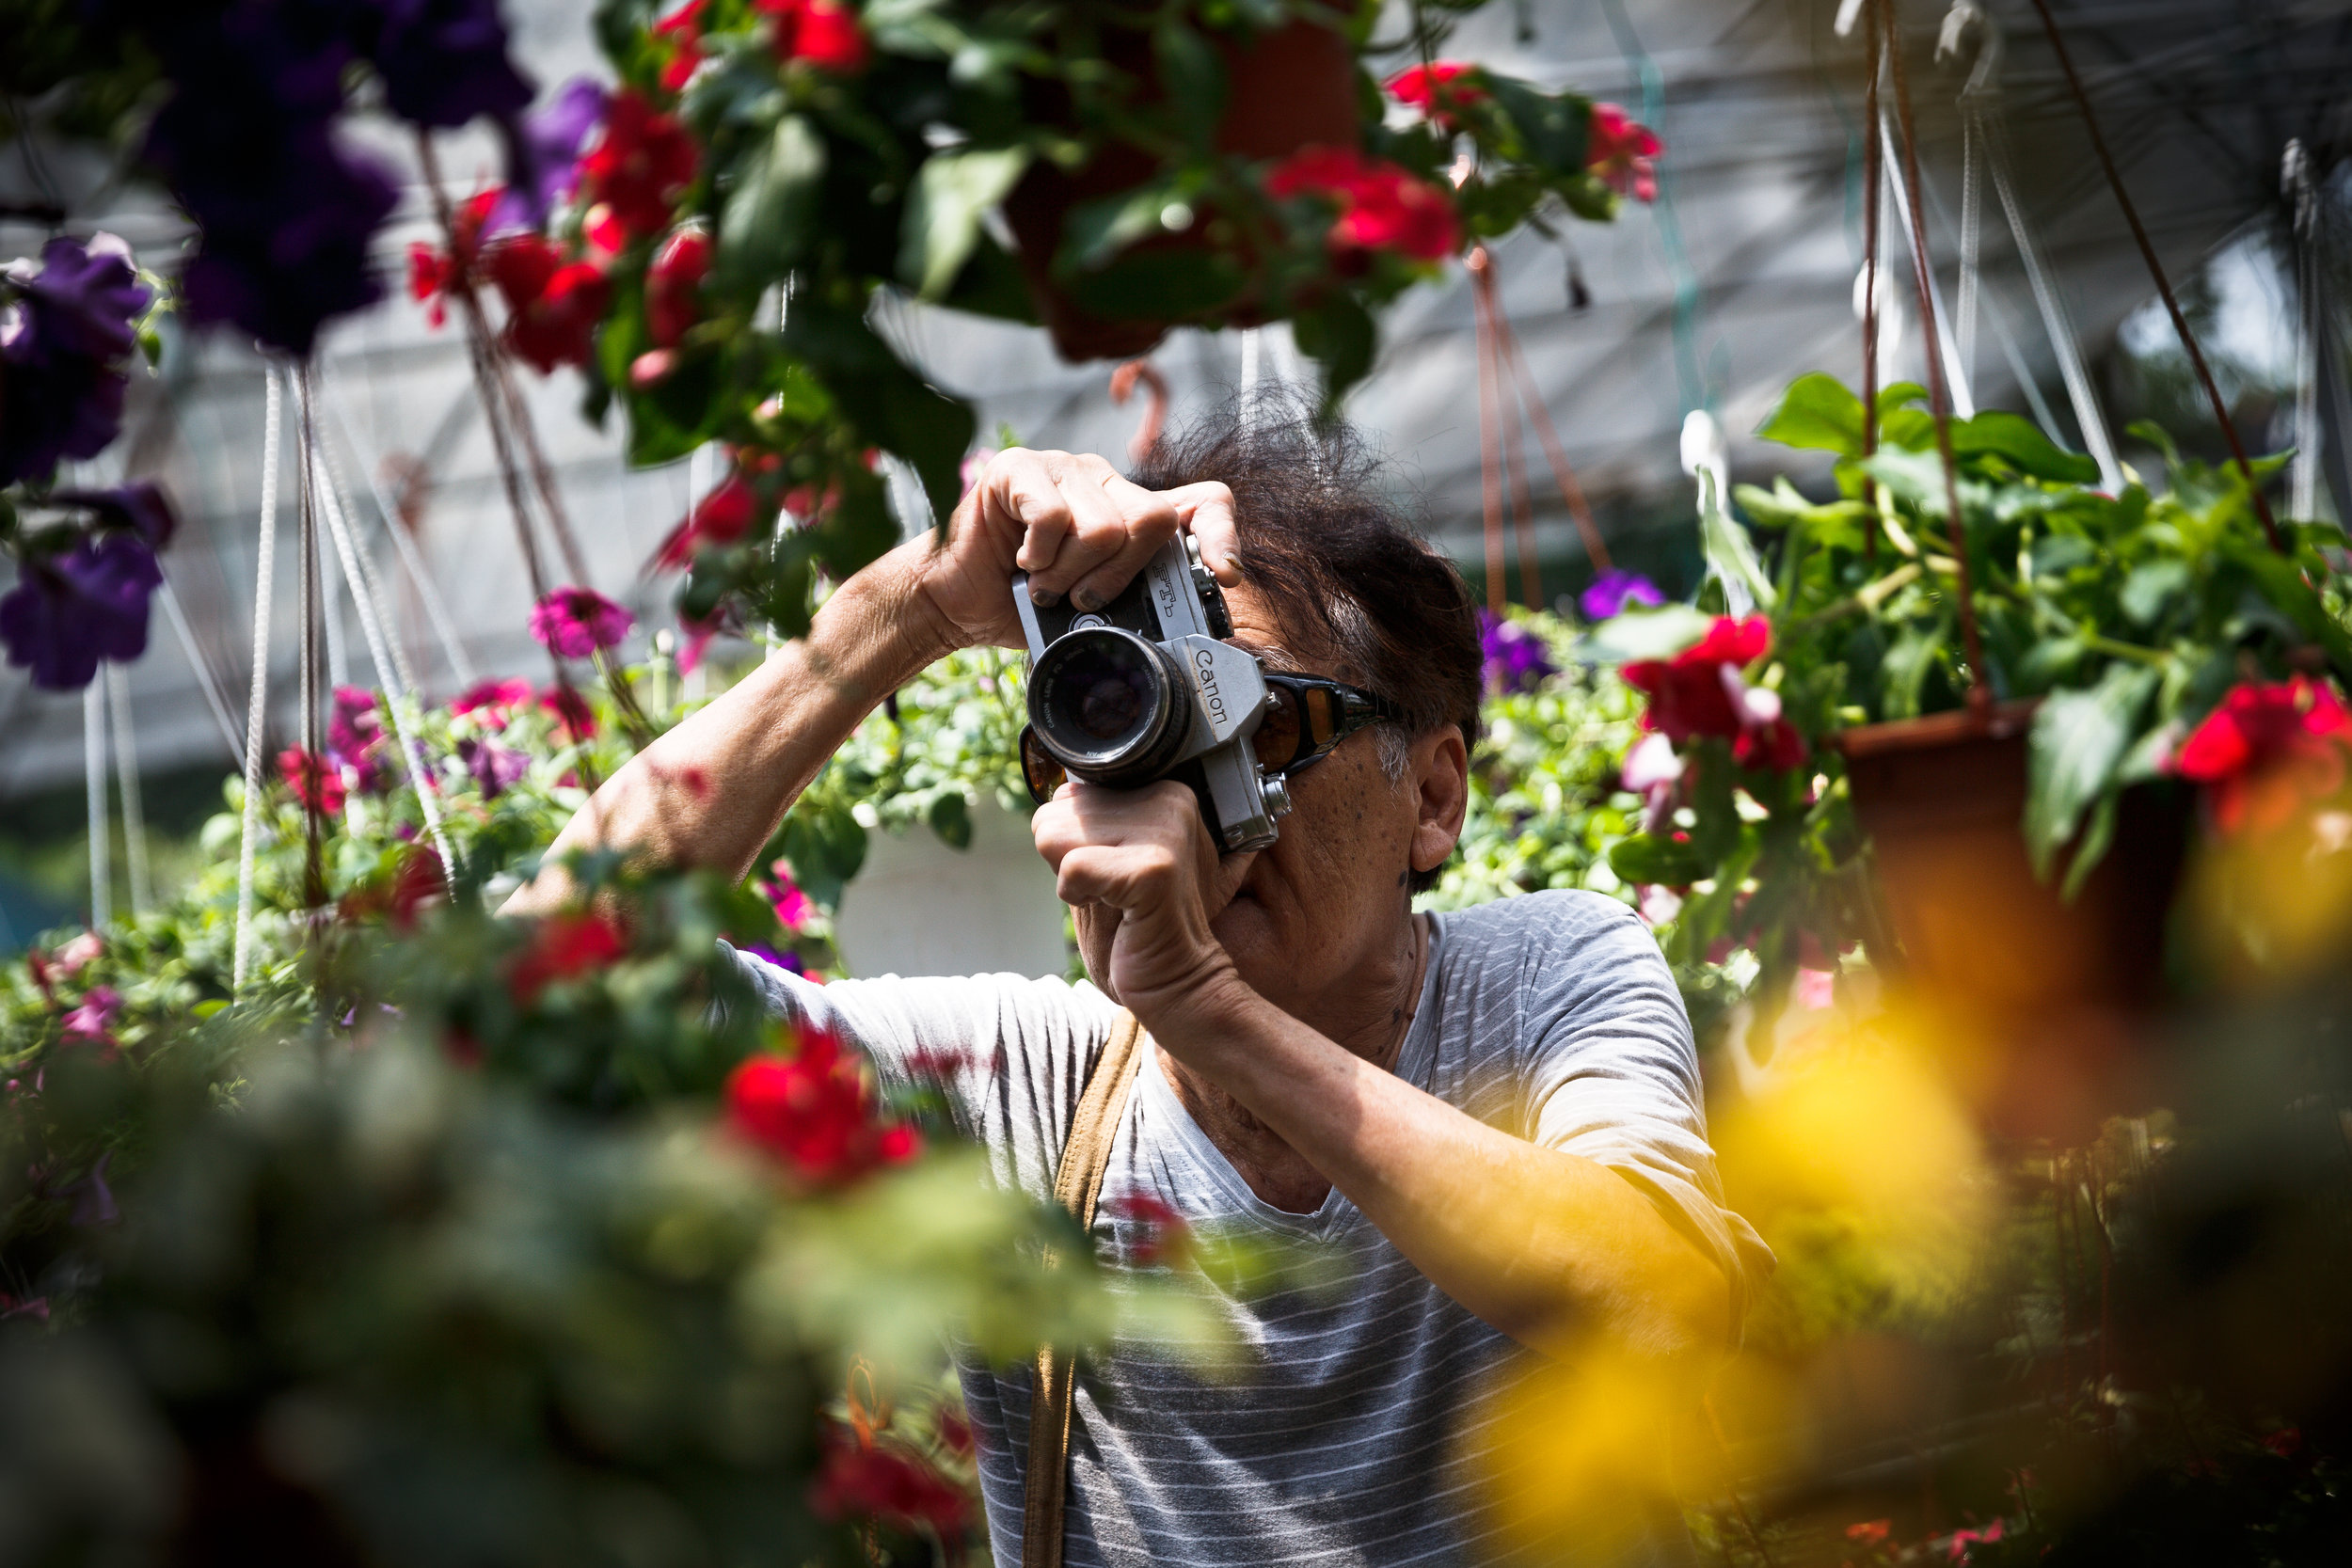 Leon likes taking photos when he was young. (photo by Mango Loke)